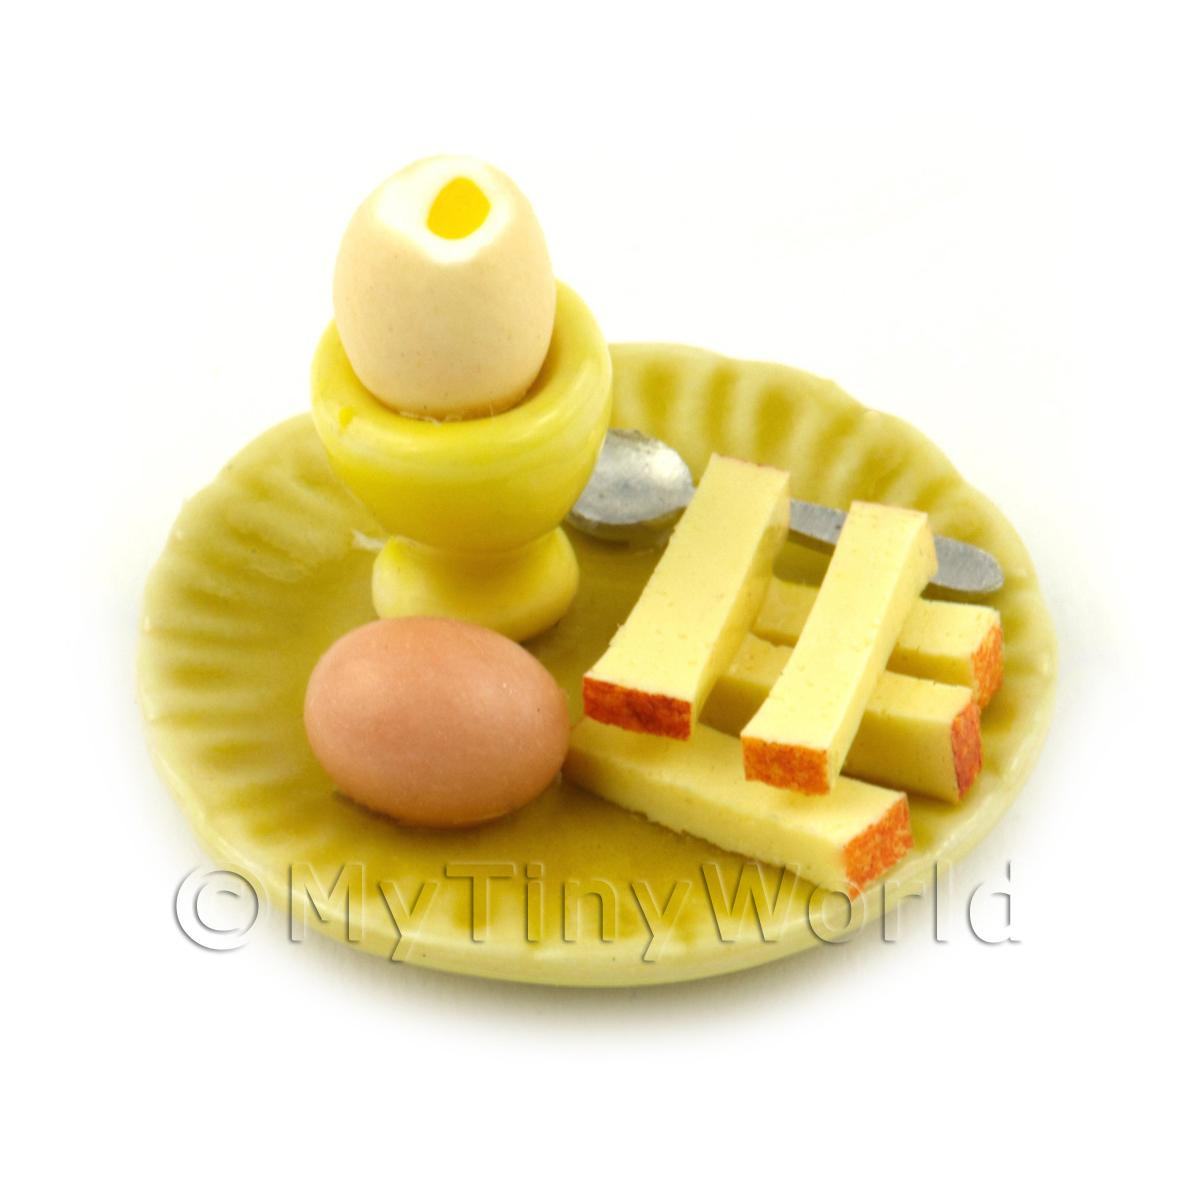 Dolls House Miniature Boiled Egg Top Off On A Yellow Plate Style 2